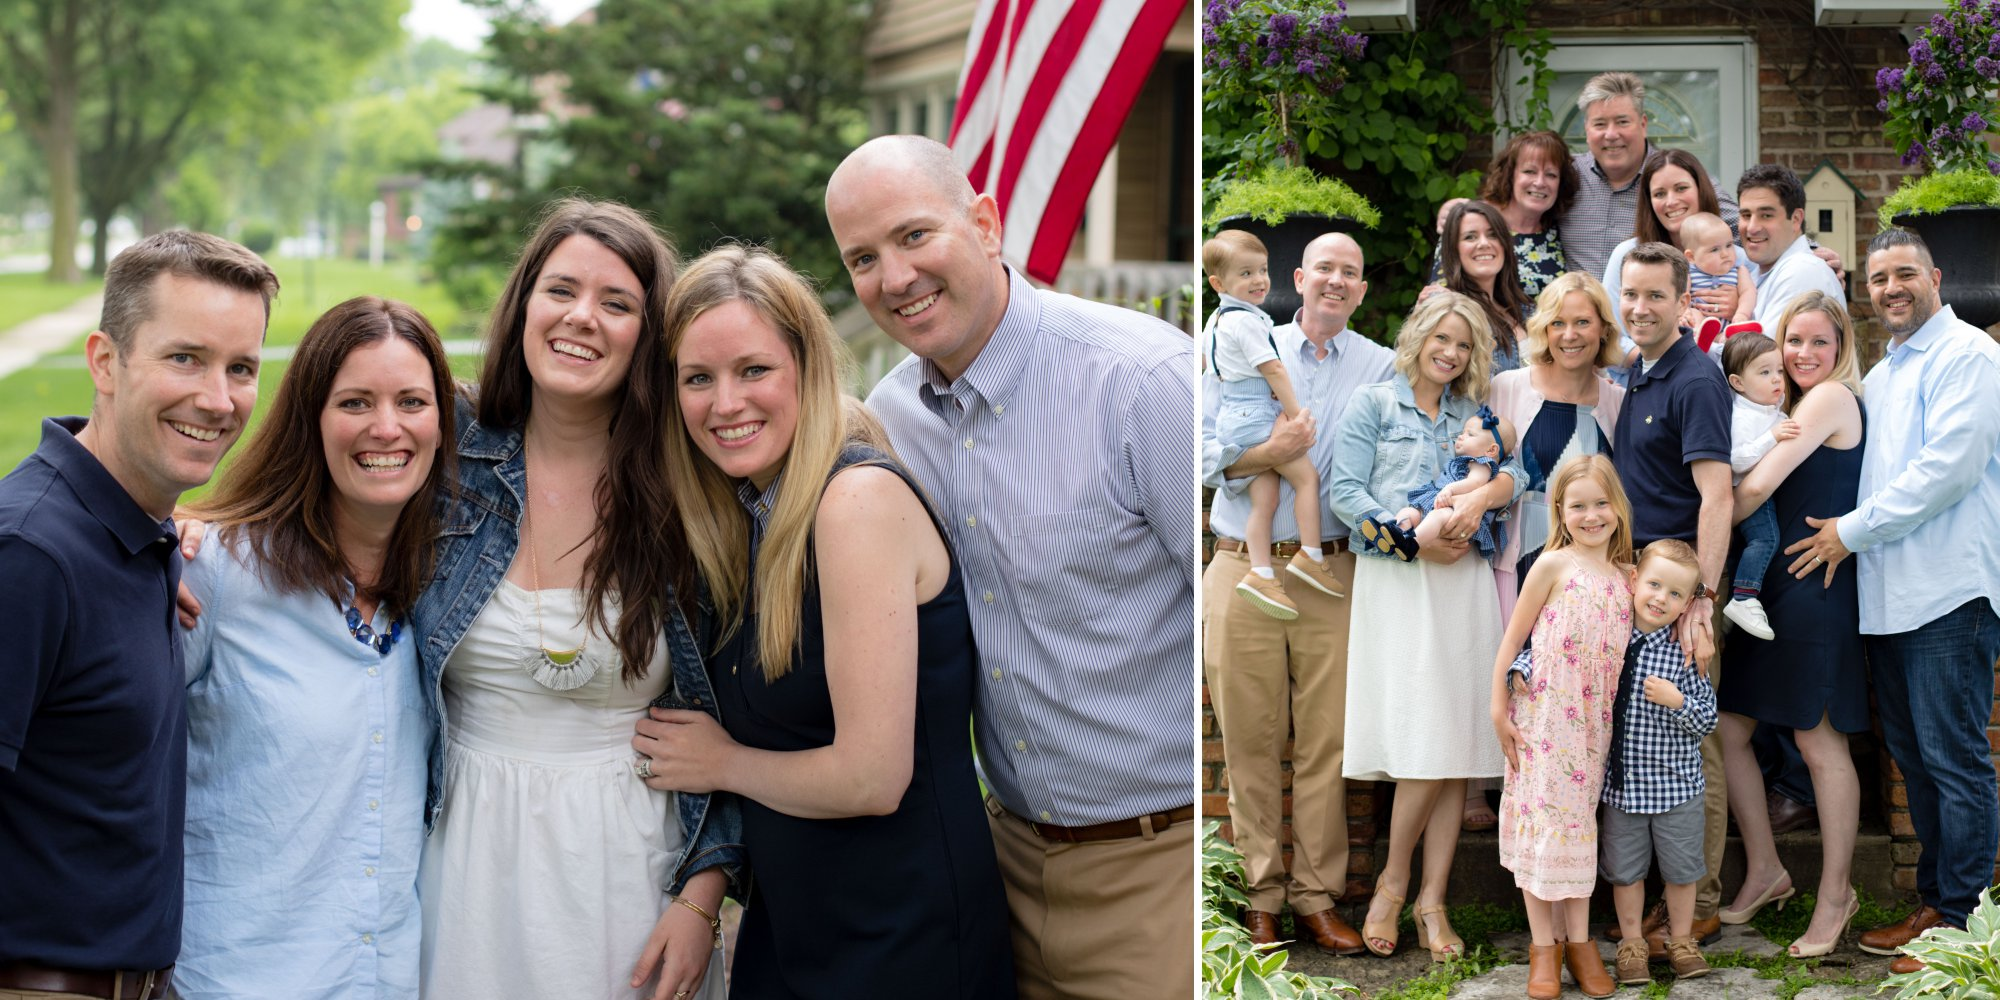 Adult siblings laughing together and large family photo in front of home they grew up in